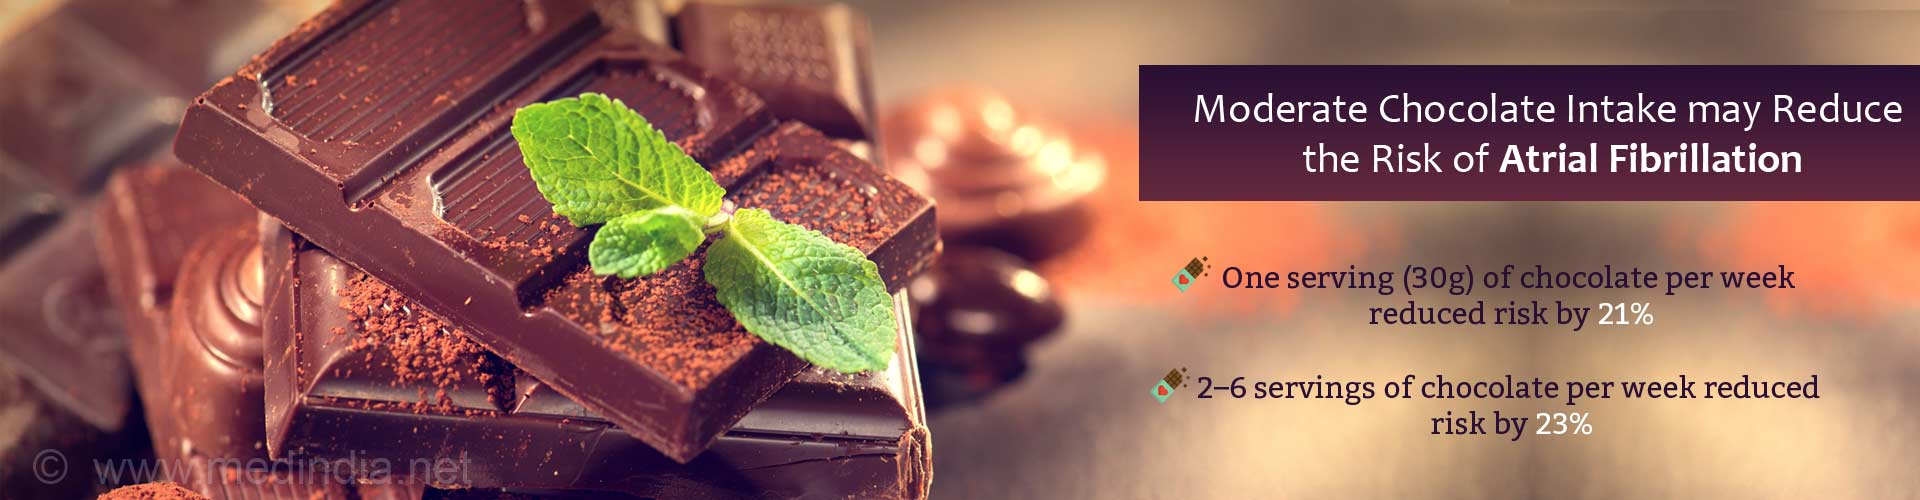 Moderate chocolate intake may reduce the risk of atrial fibrillation - One serving (30g) of chocolate per week reduced risk by 21% - 2-6 servings of chocolate per week reduced risk by 23%